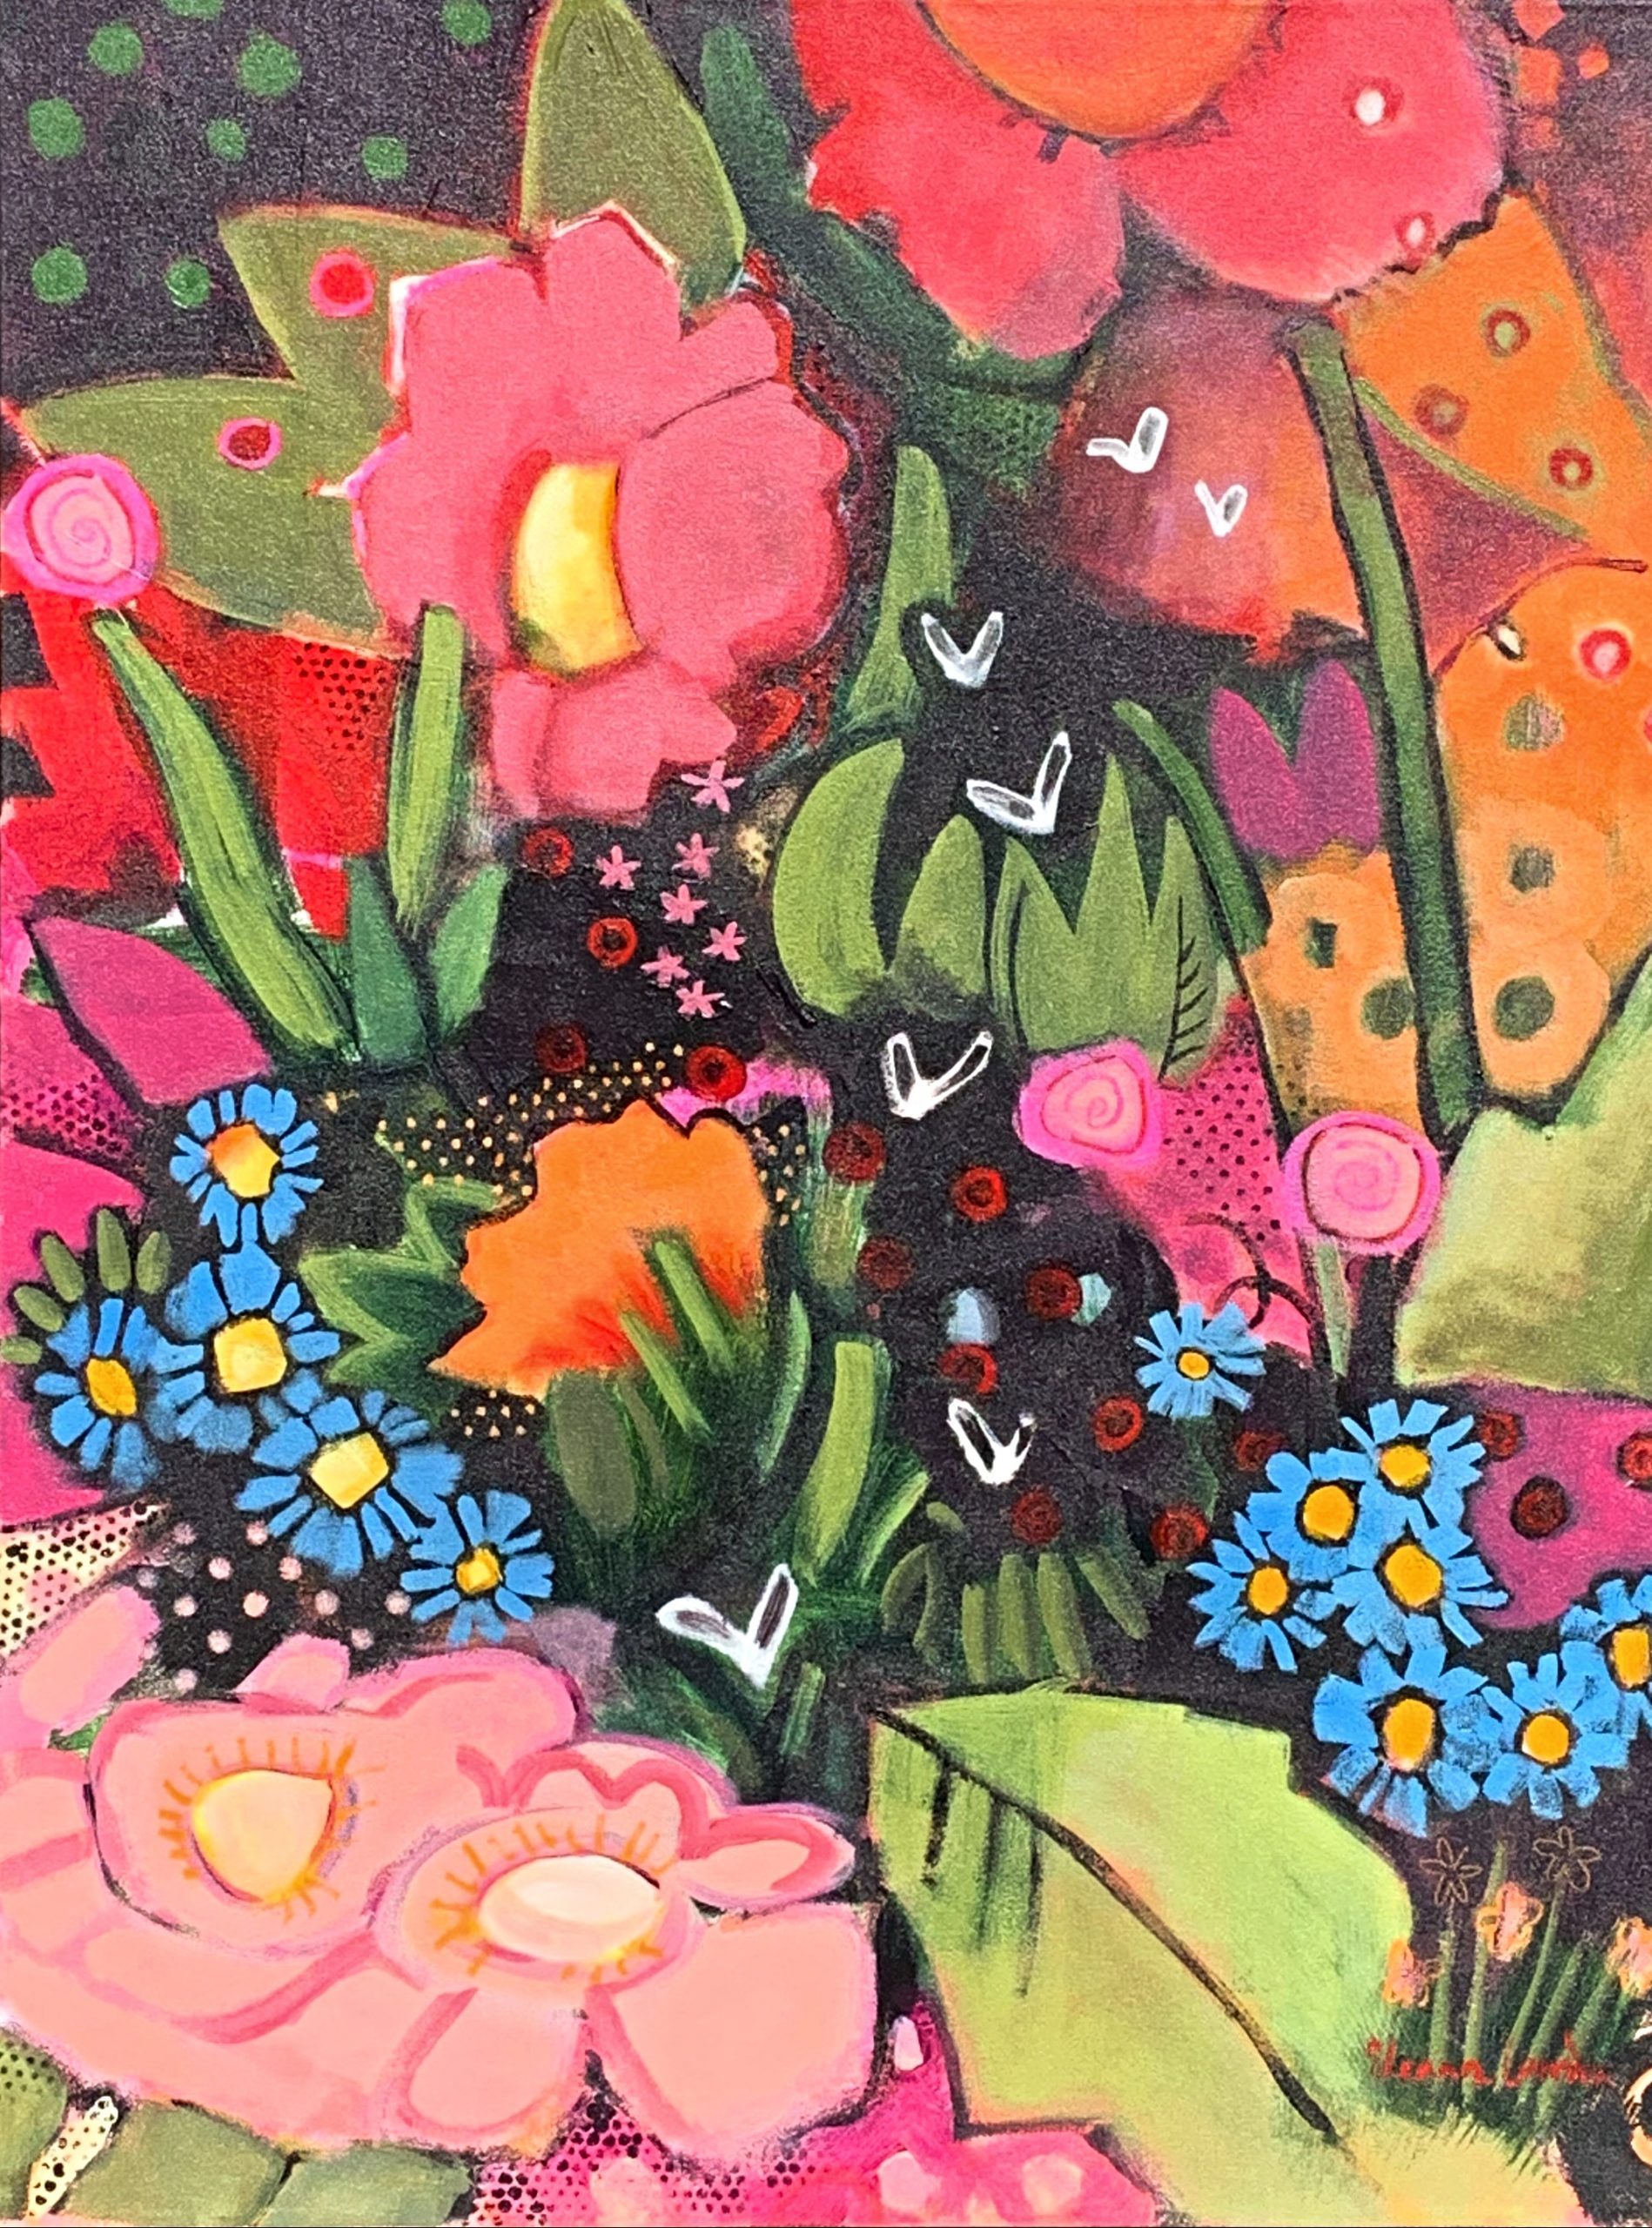 Fireflies, acrylic night garden painting by Eleanor Lowden | Effusion Art Gallery + Cast Glass Studio, Invermere BC